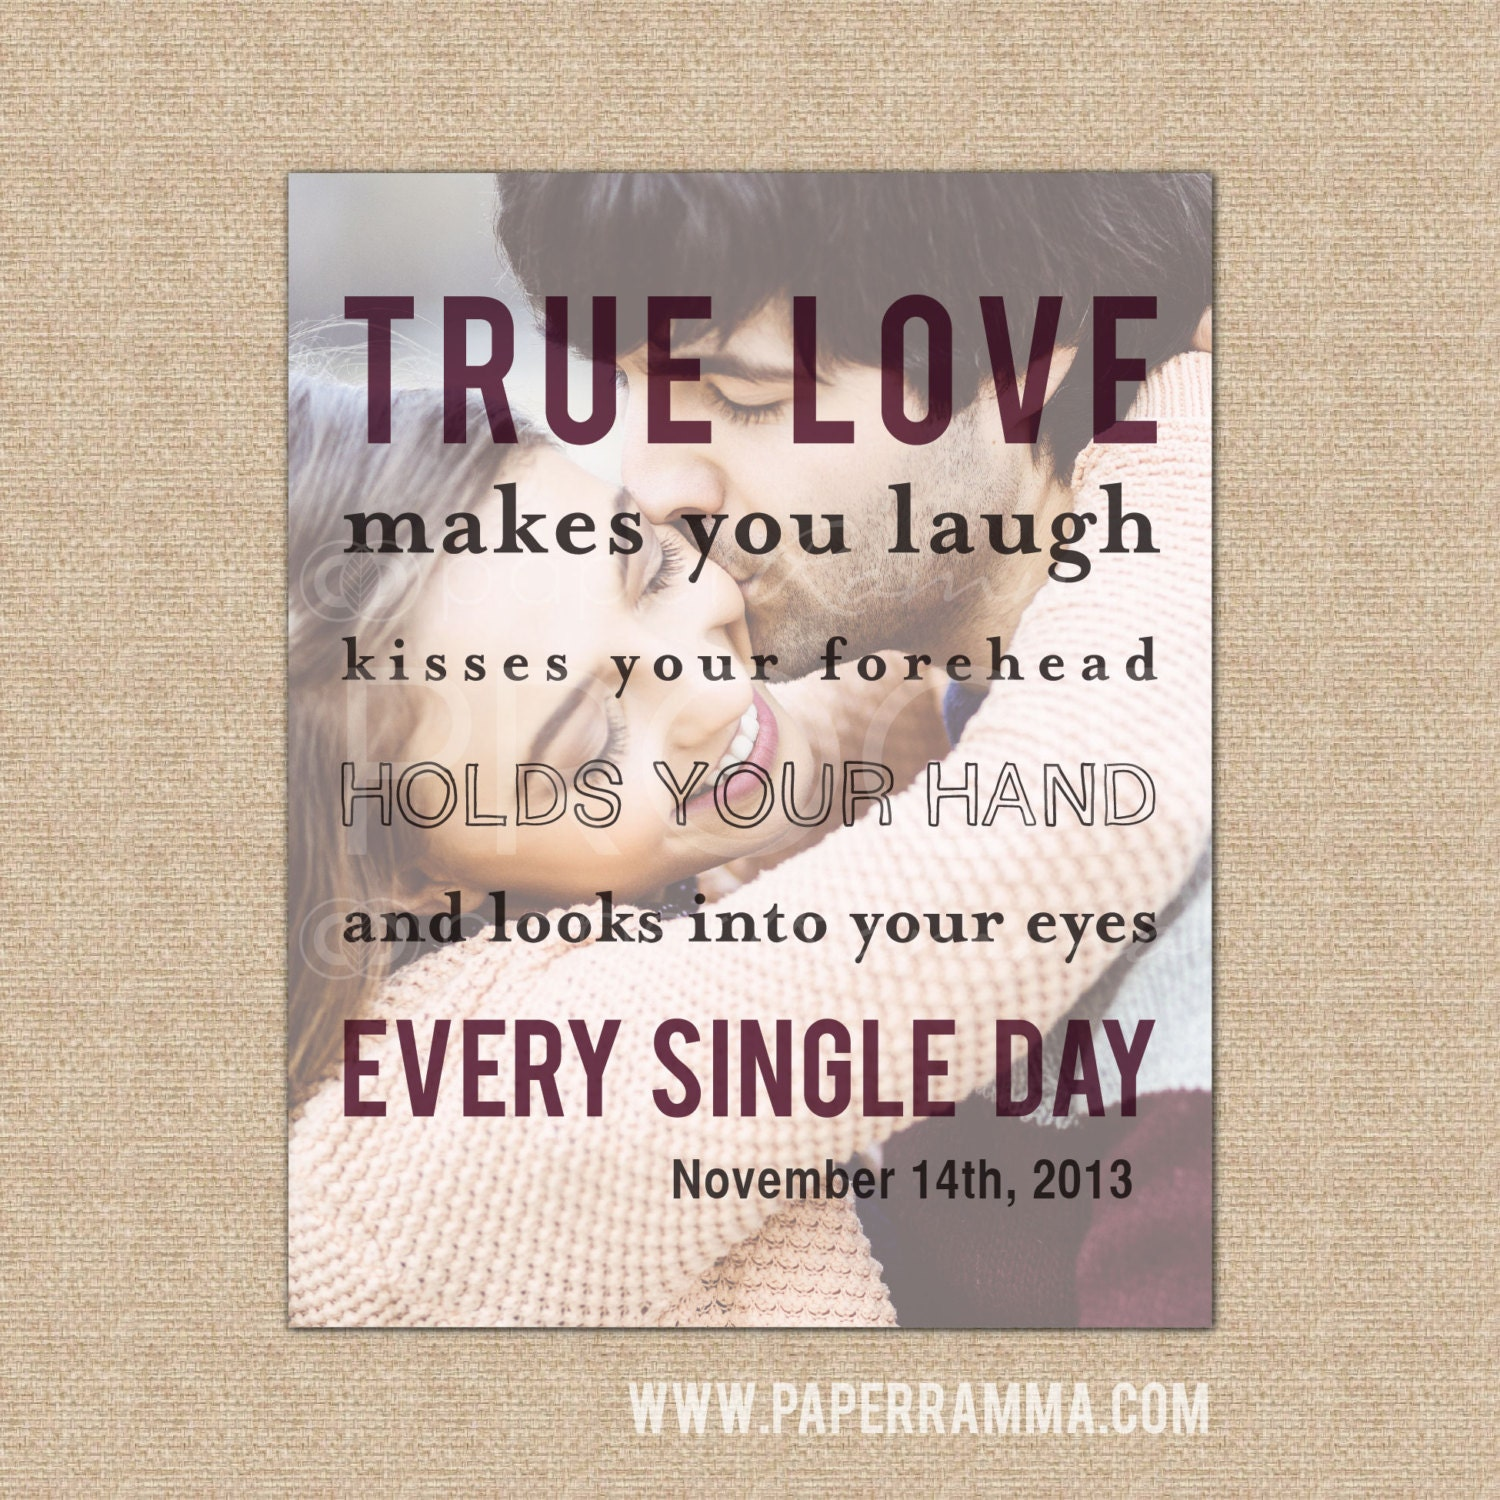 True Love Quotes Httpsimg.etsystaticila8E6F2685070984Il_.